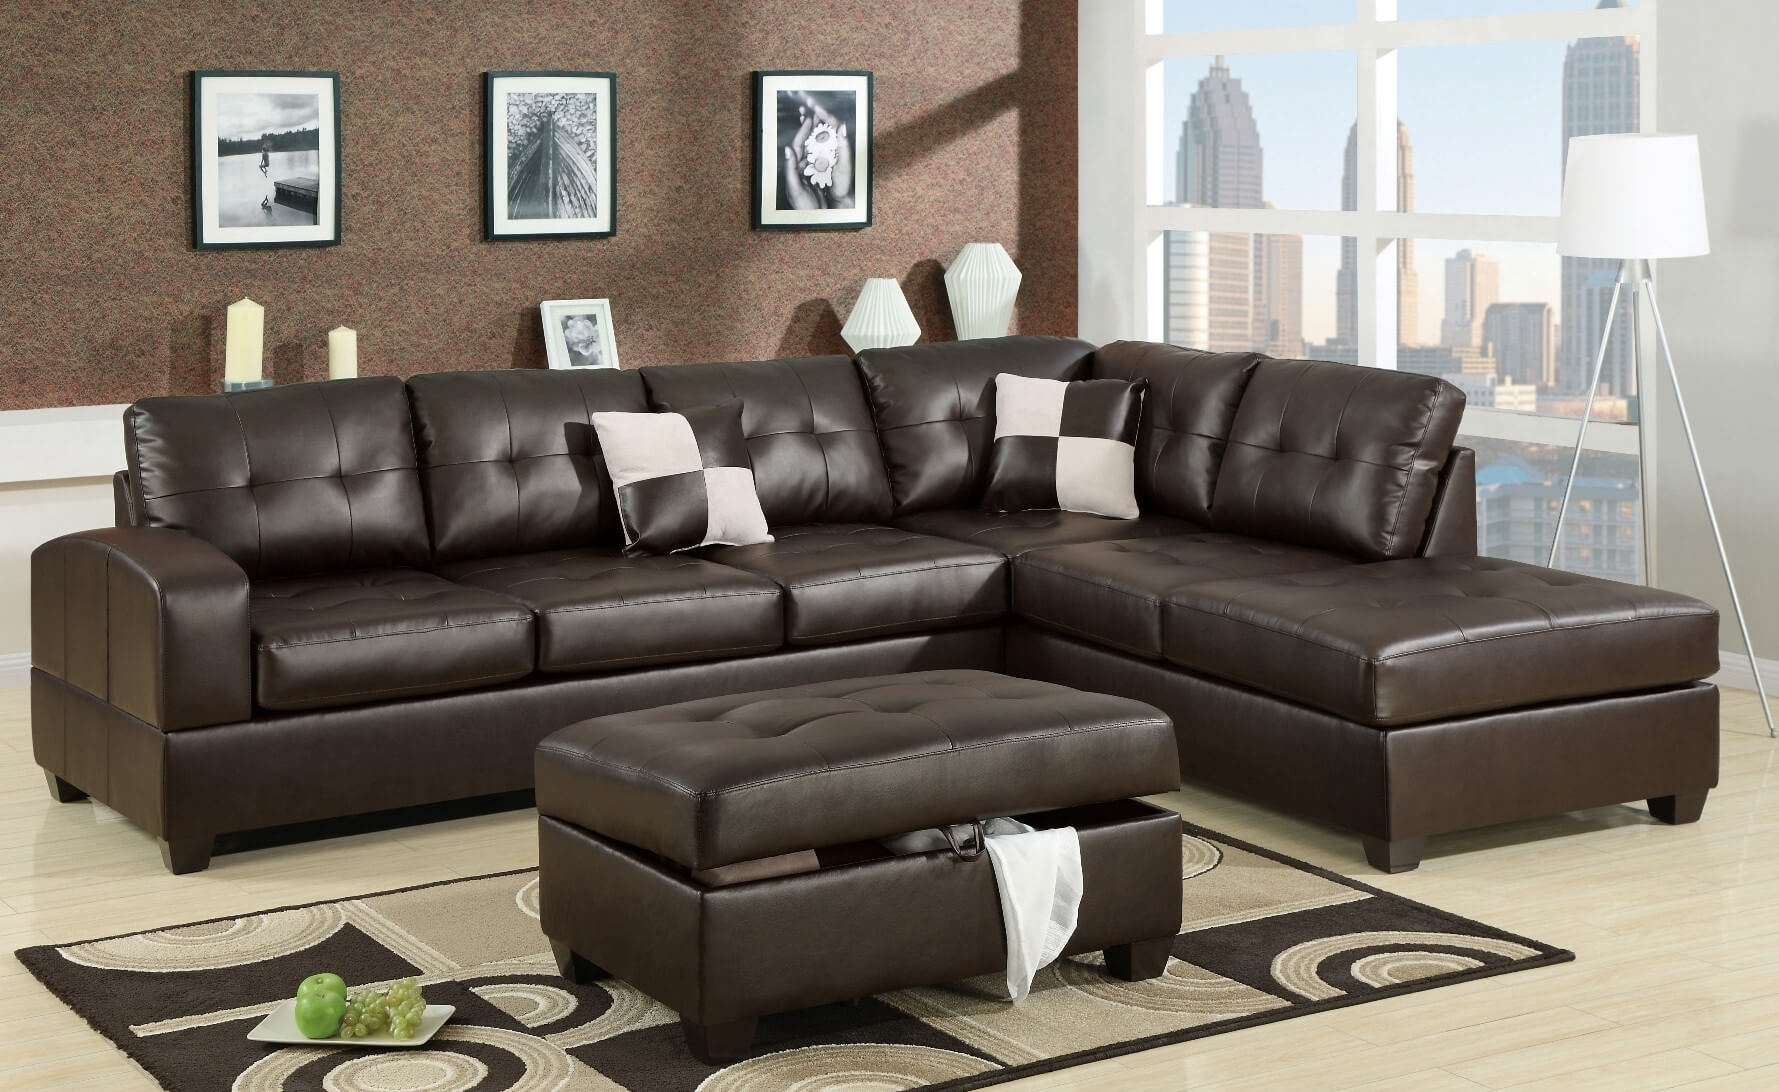 10 photos tampa sectional sofas sofa ideas rh tany net sectional sofas tampa factory outlet sectional sofas tampa fl